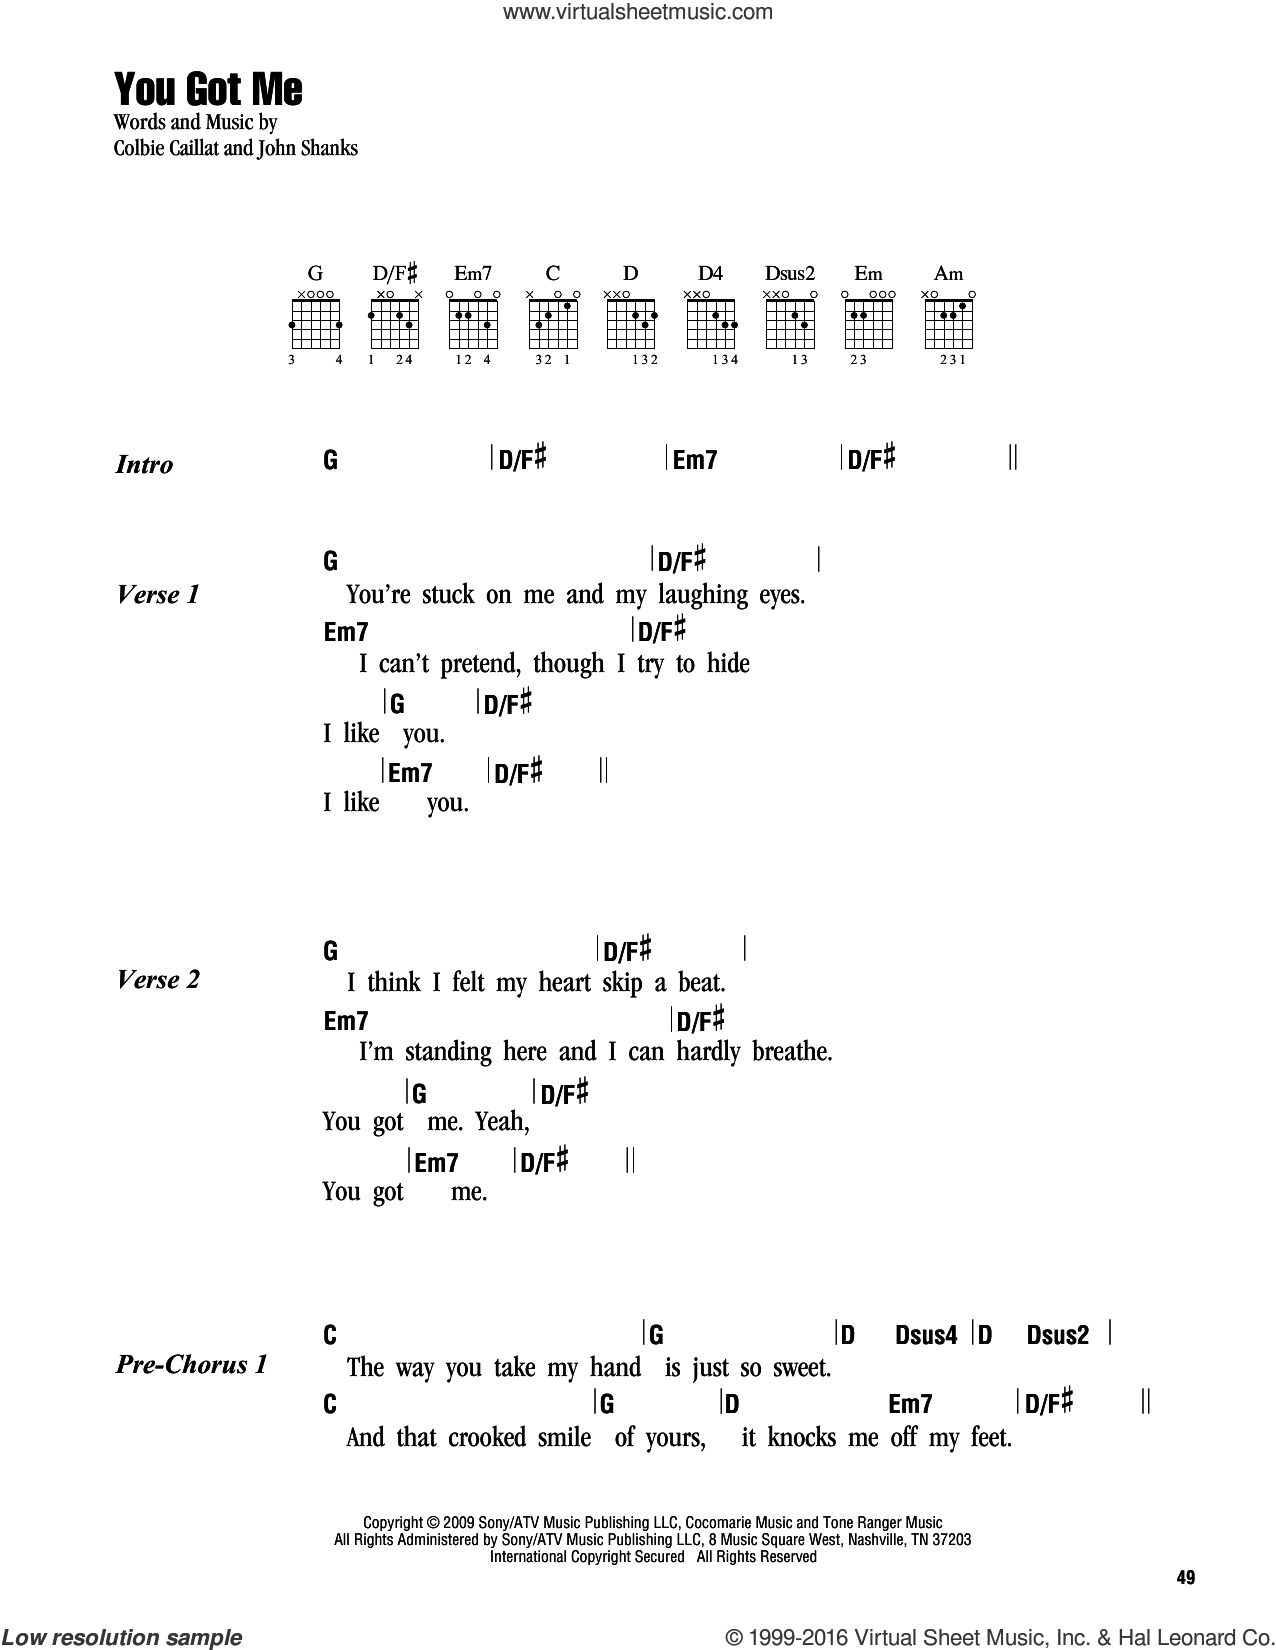 You Got Me sheet music for guitar (chords) by Colbie Caillat and John Shanks, intermediate skill level